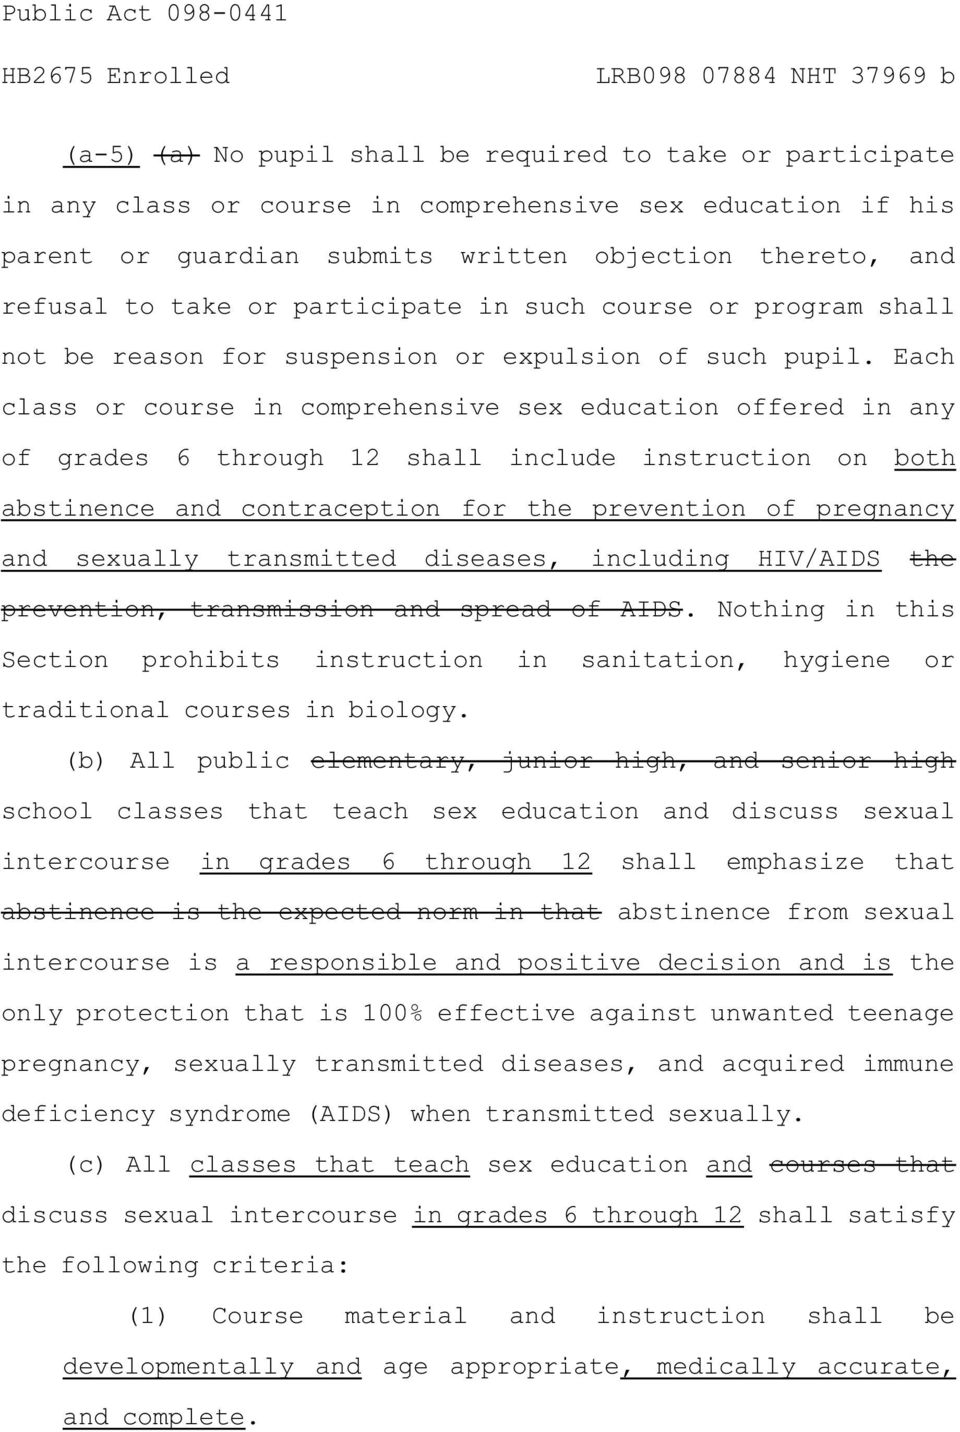 Each class or course in comprehensive sex education offered in any of grades 6 through 12 shall include instruction on both abstinence and contraception for the prevention of pregnancy and sexually